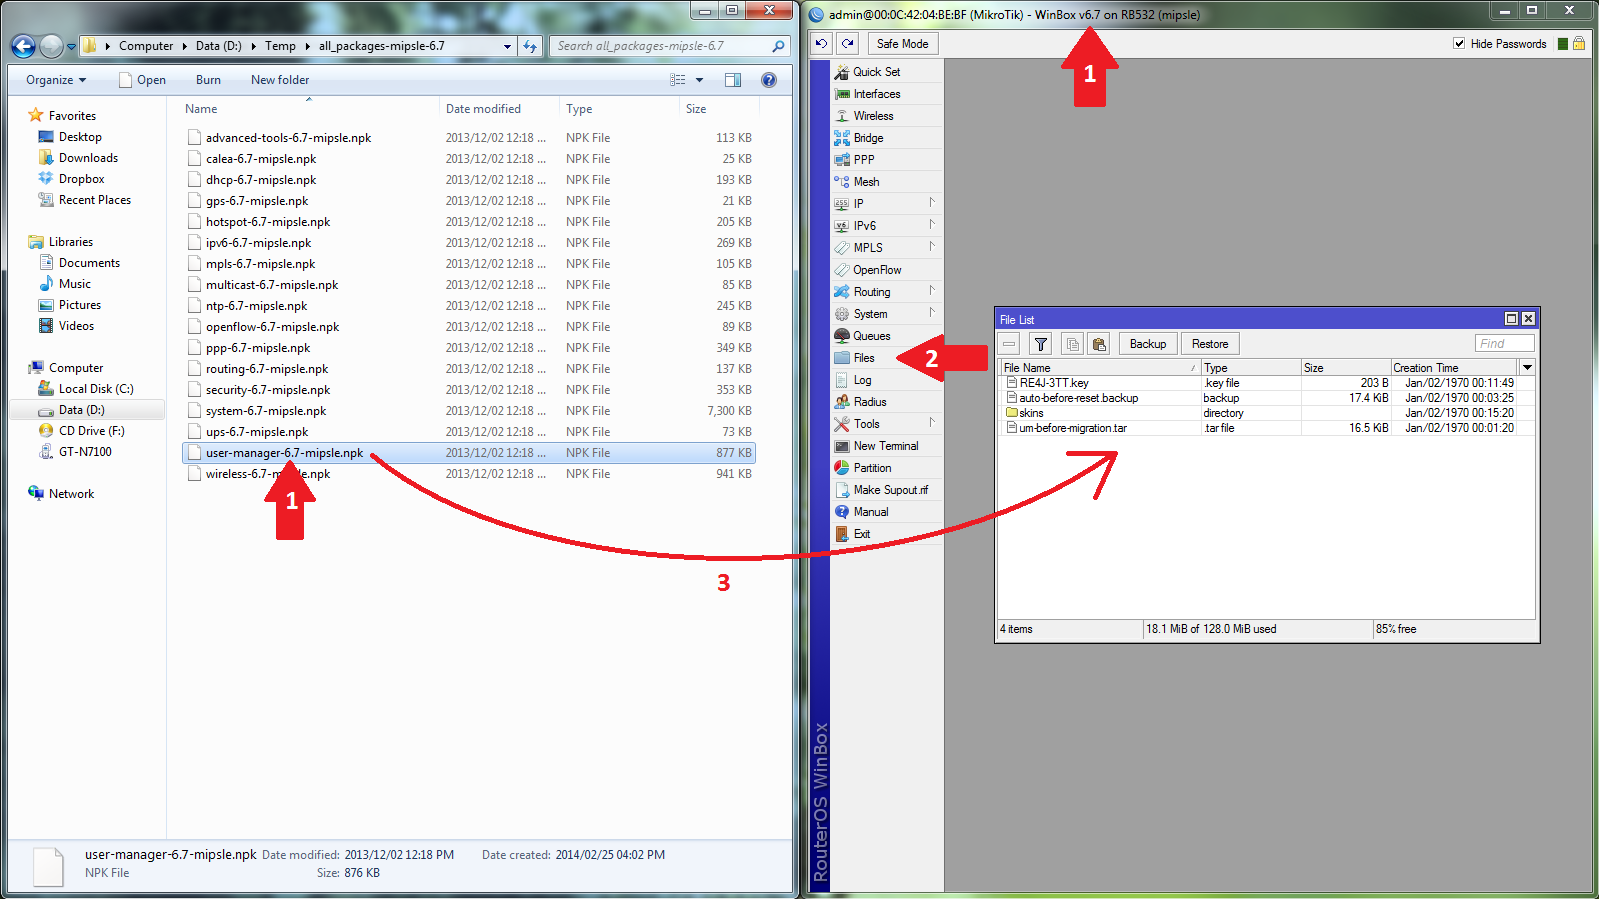 How to connect to internet by using windows 7 built in pppoe wizard - Step 3 Configure Interfaces